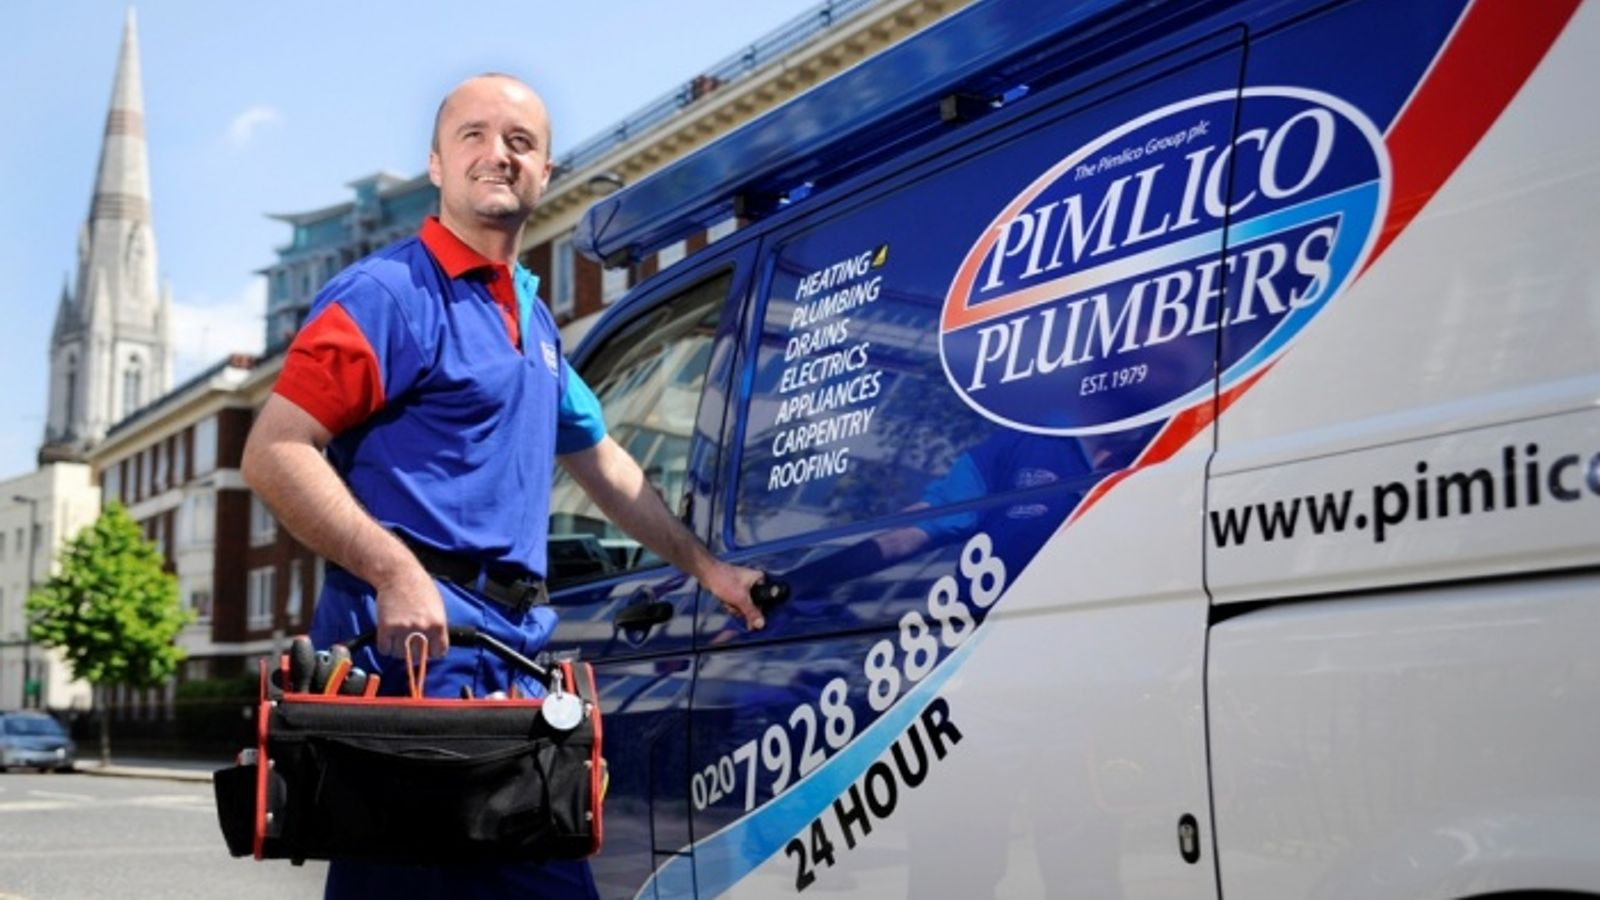 Pimlico Plumbers tycoon Mullins nears £100m deal to sell company